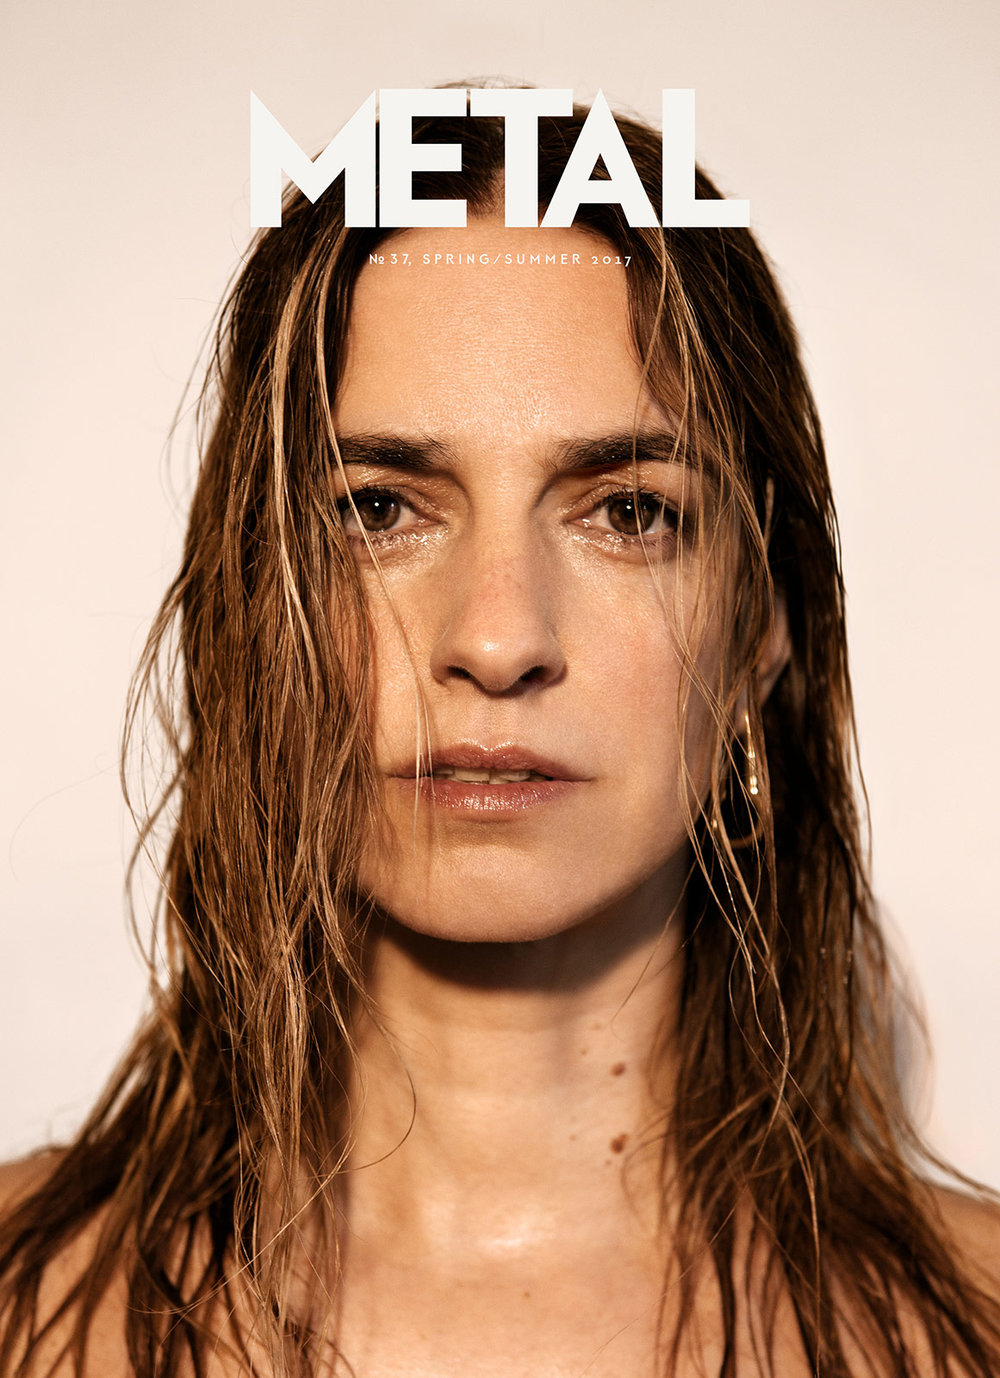 COVER 4 - Joana Preiss photographed by Noel Quintela wearing earring Louis Vuitton.